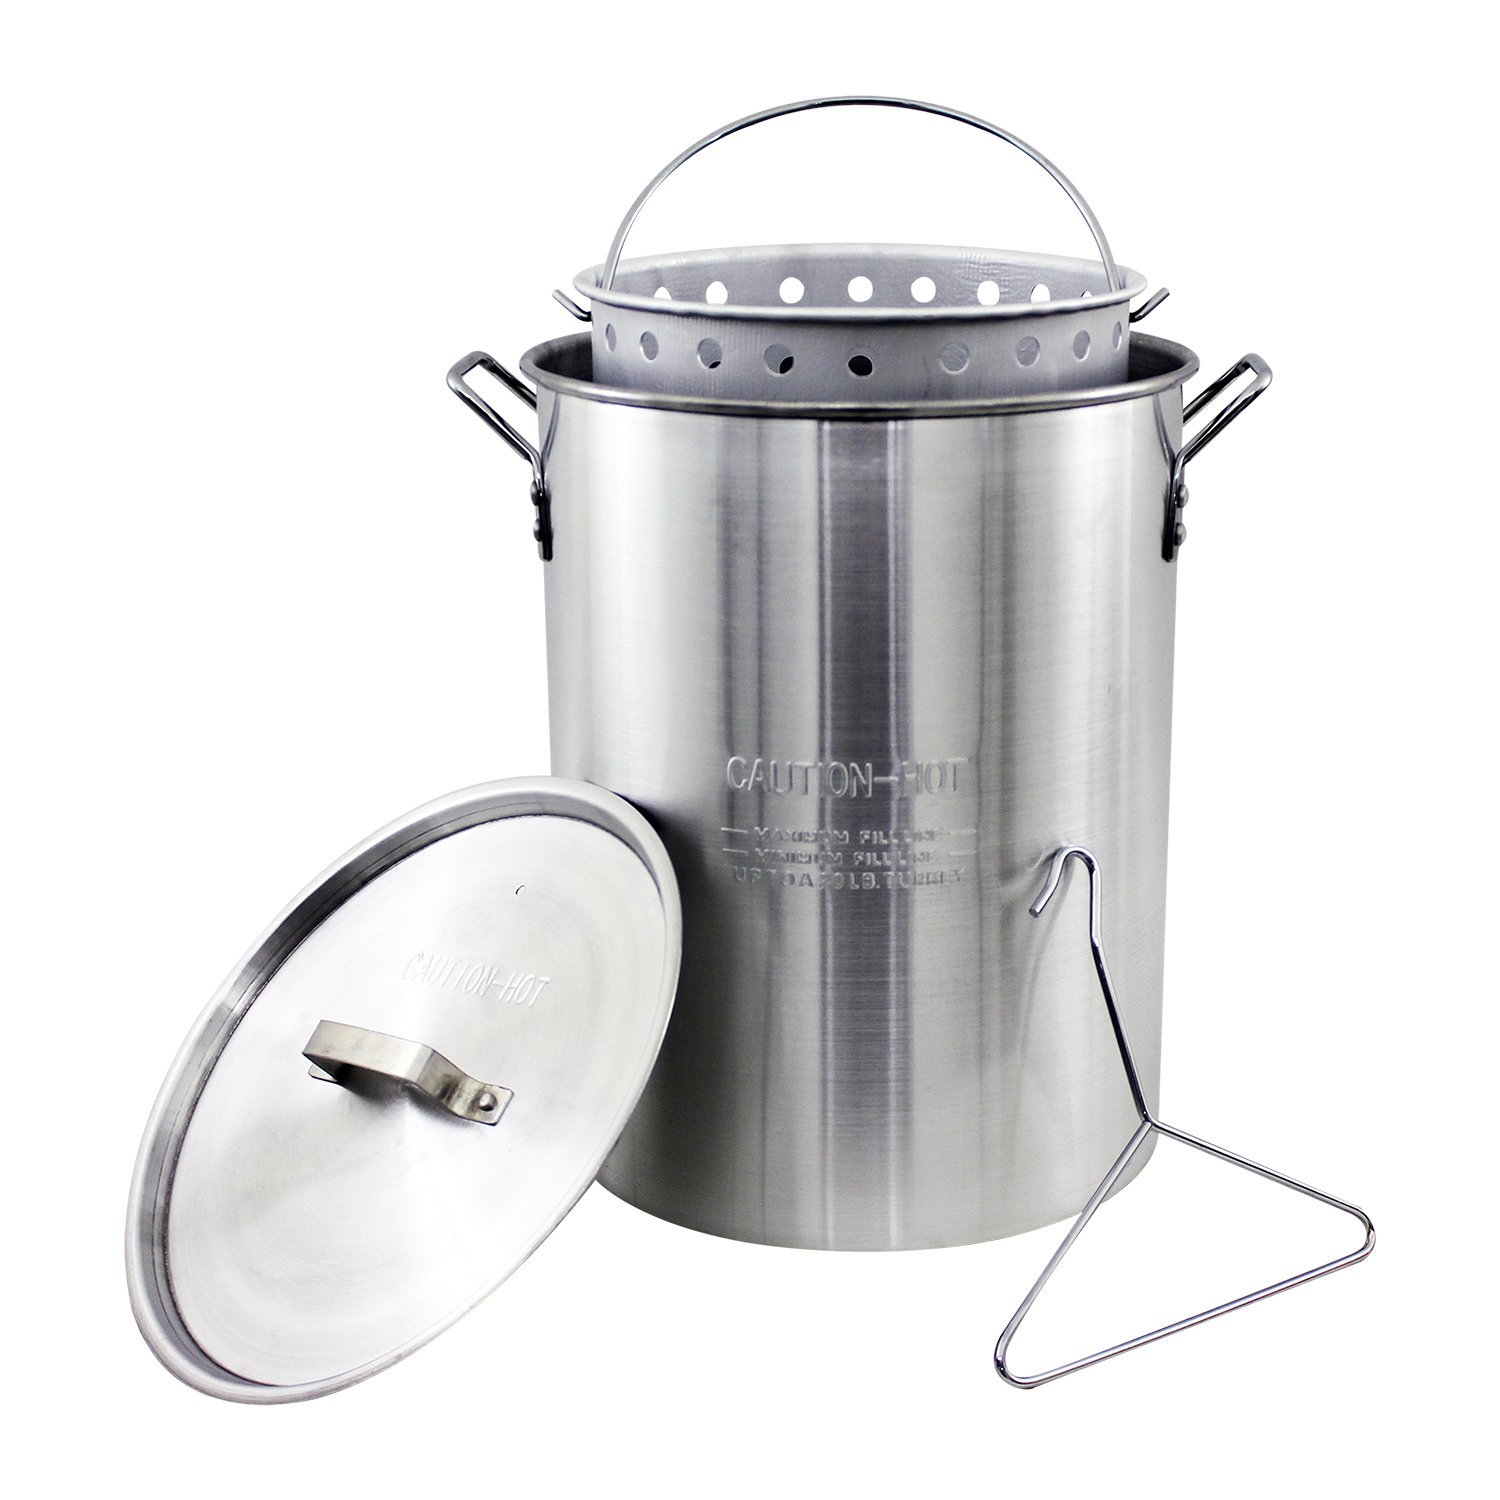 Chard ASP30, Aluminum Stock Pot and Perforated Strainer Basket with Safety Hanger, 30 Quart by Chard (Image #1)